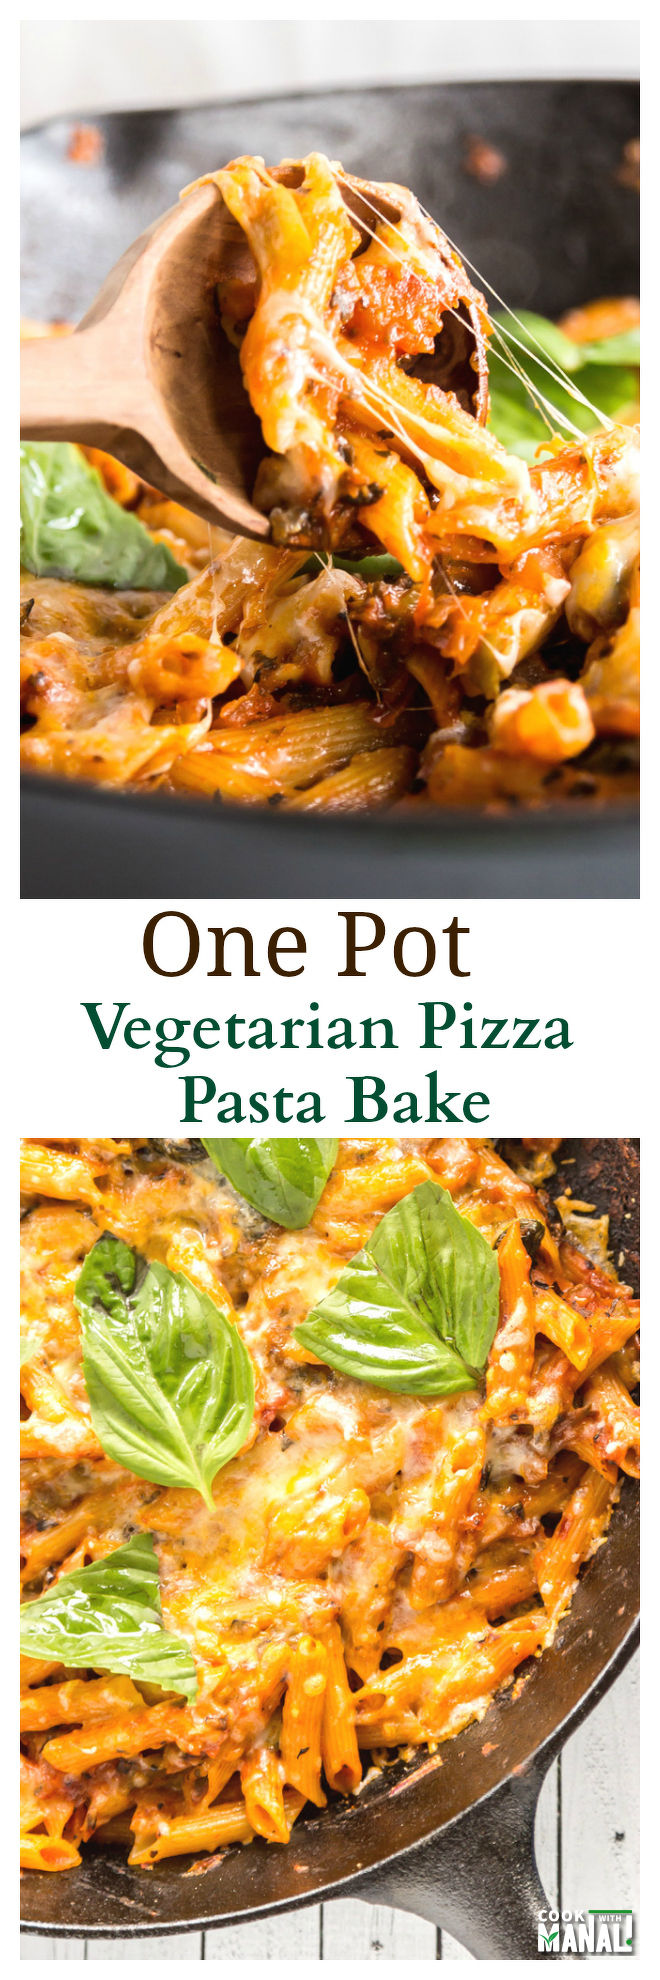 One Pot Vegetarian Pizza Pasta Bake Collage